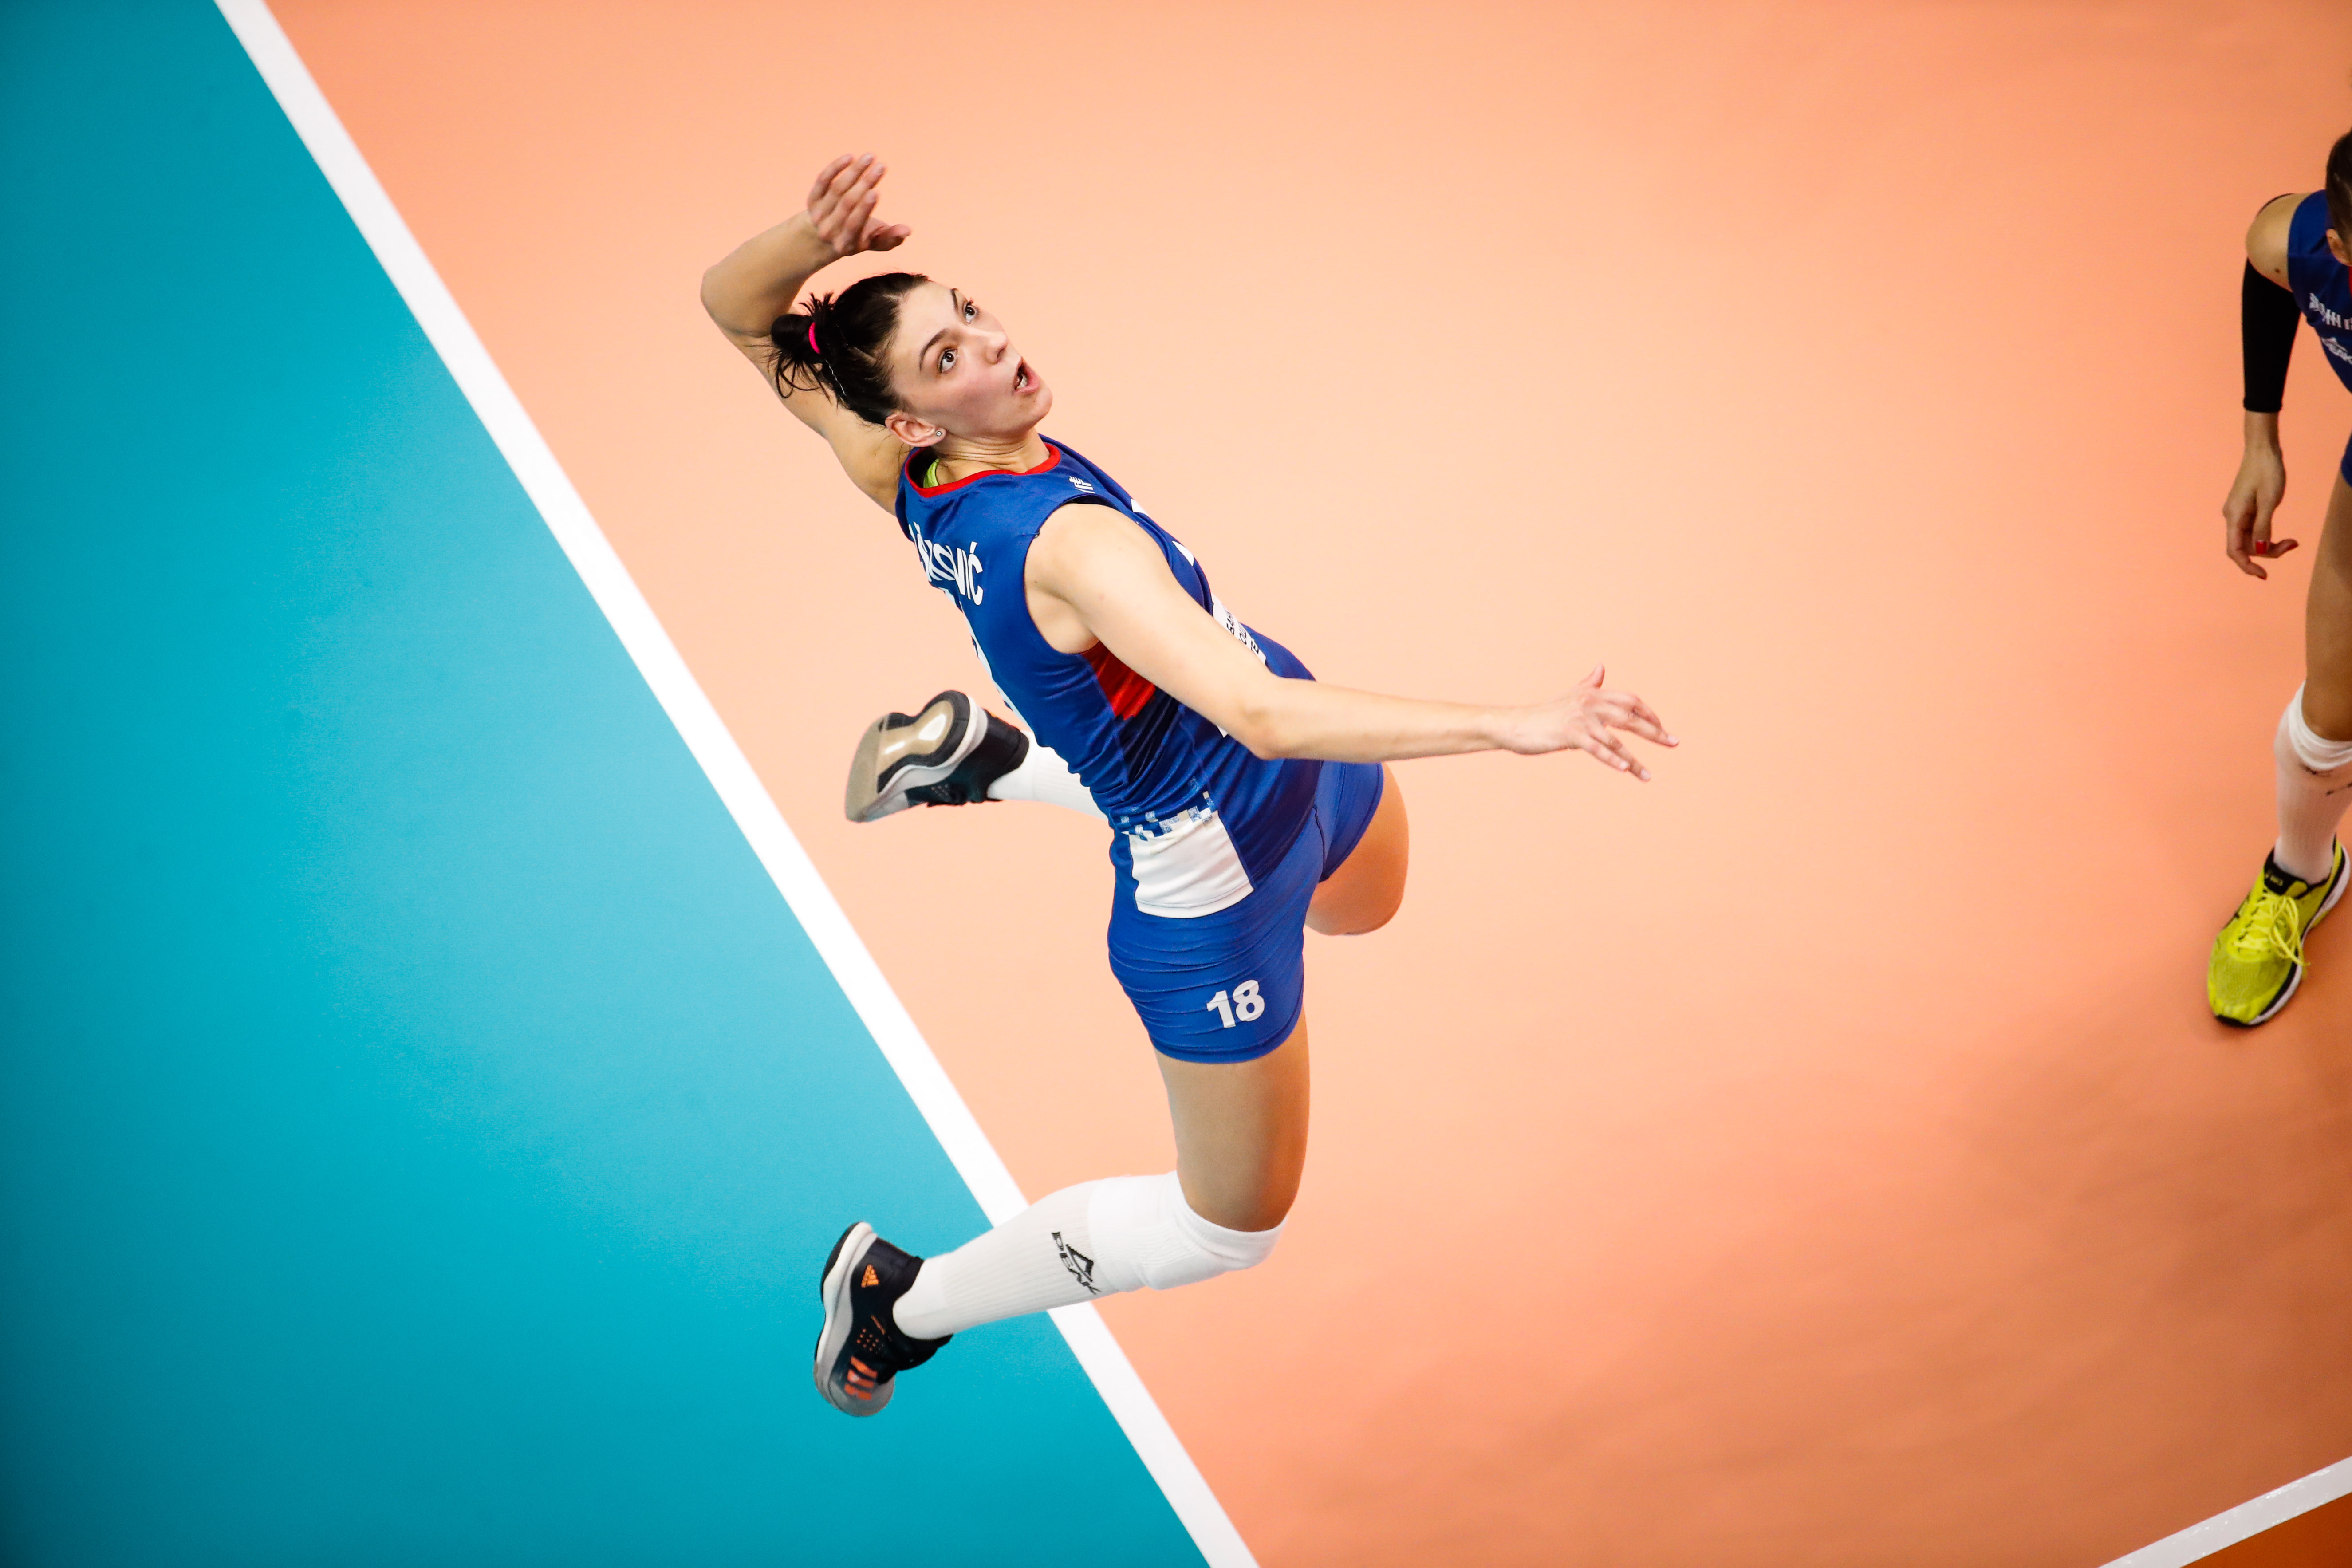 Fivb World League 2017 News Detail Finals 1 2018 World Championship Dream Team On Path To 2019 Vnl Fivb Volleyball Nations League 2019